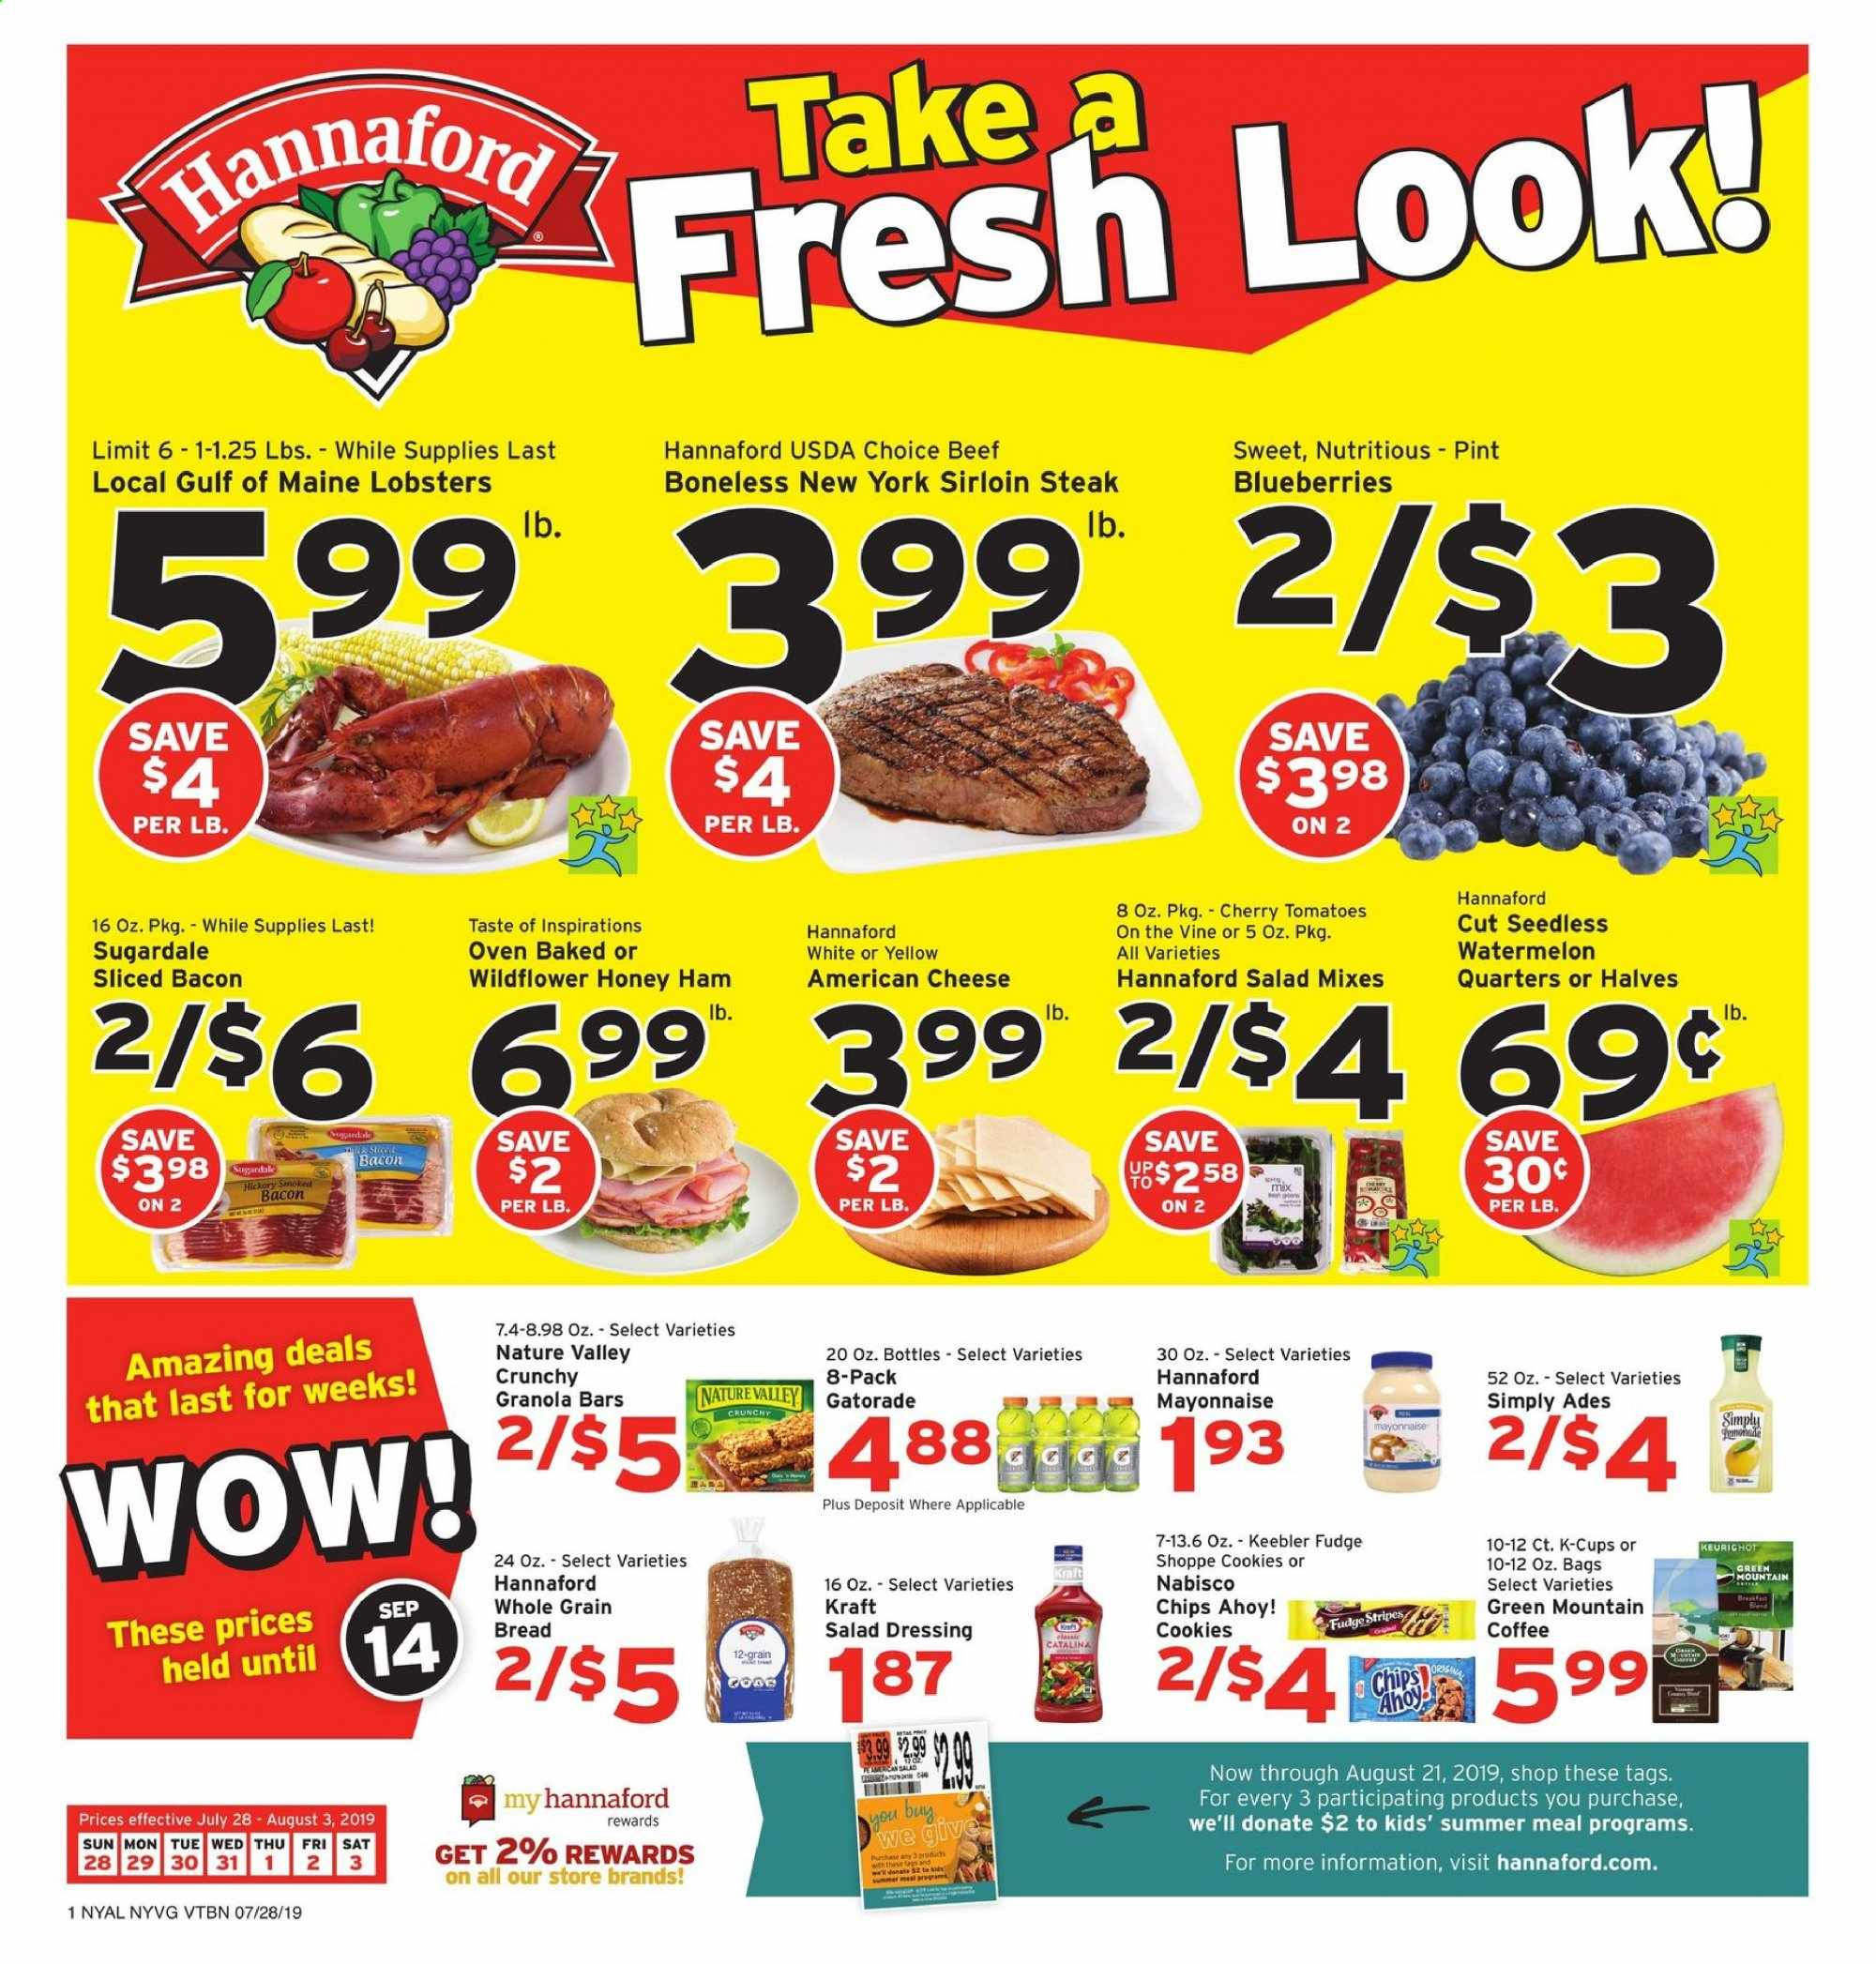 Hannaford Flyer  - 07.28.2019 - 08.03.2019. Page 1.